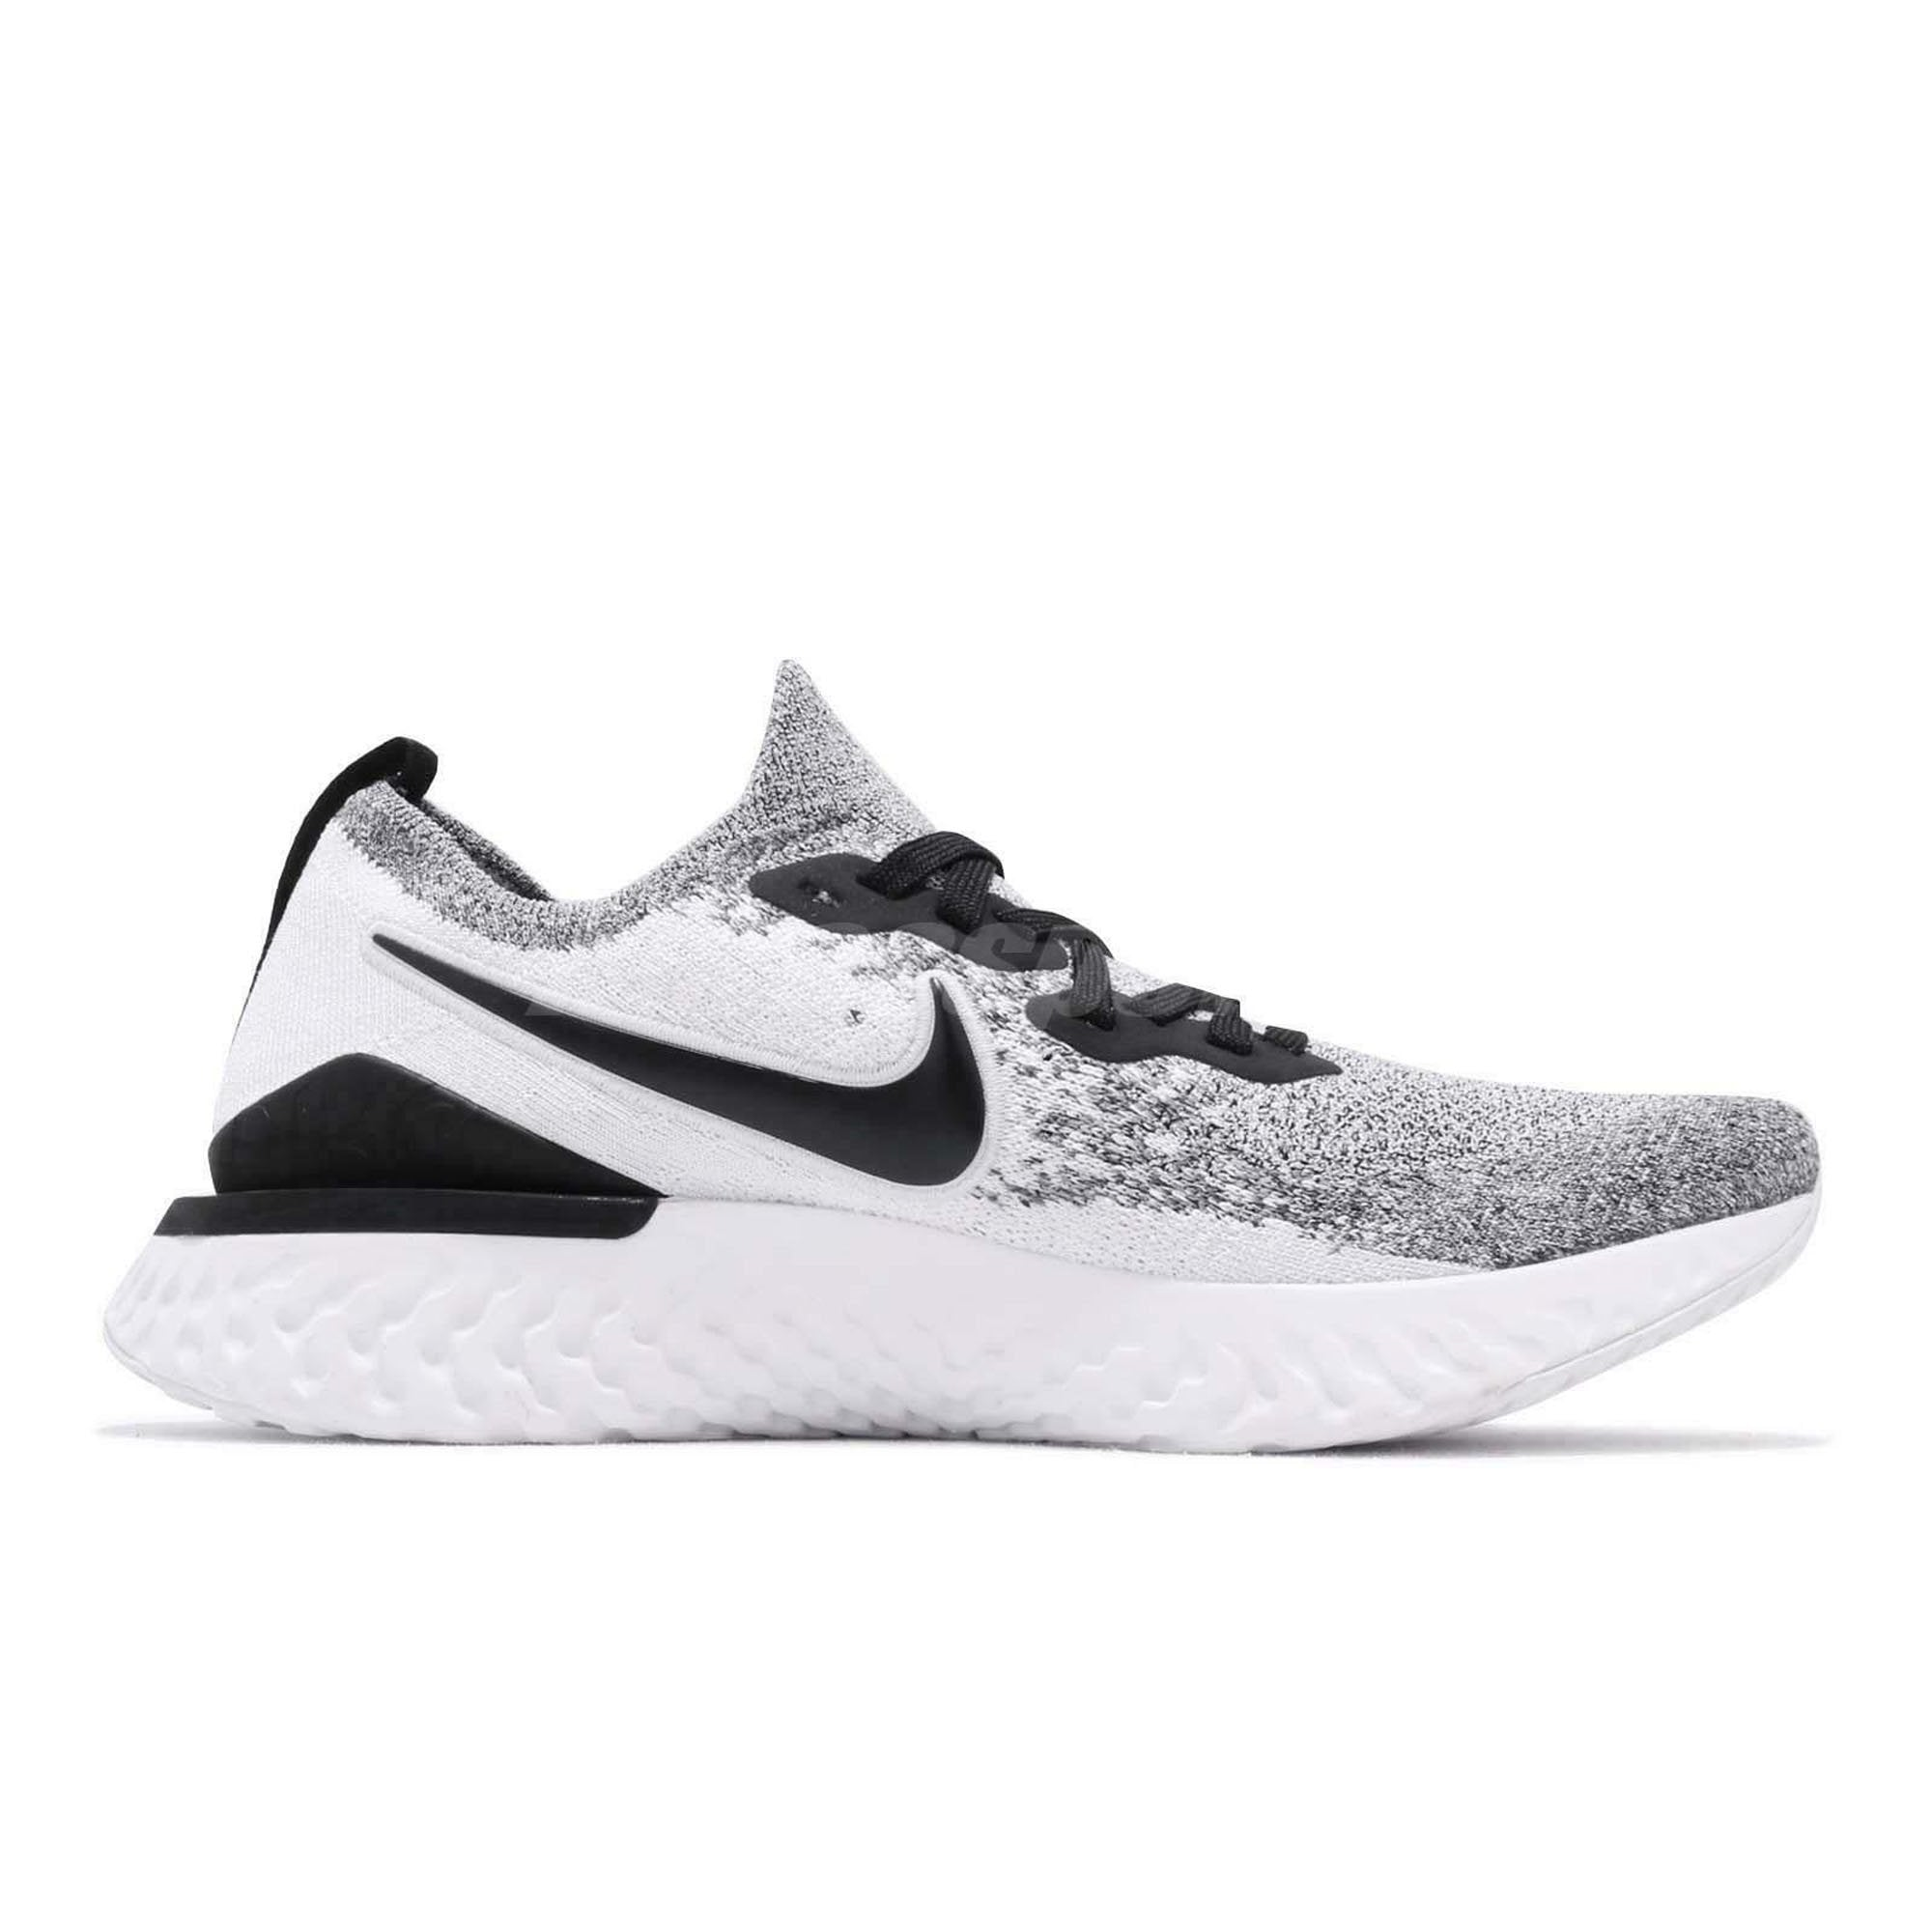 Nike Men's Epic React Flyknit 2 Shoes - Men Nike